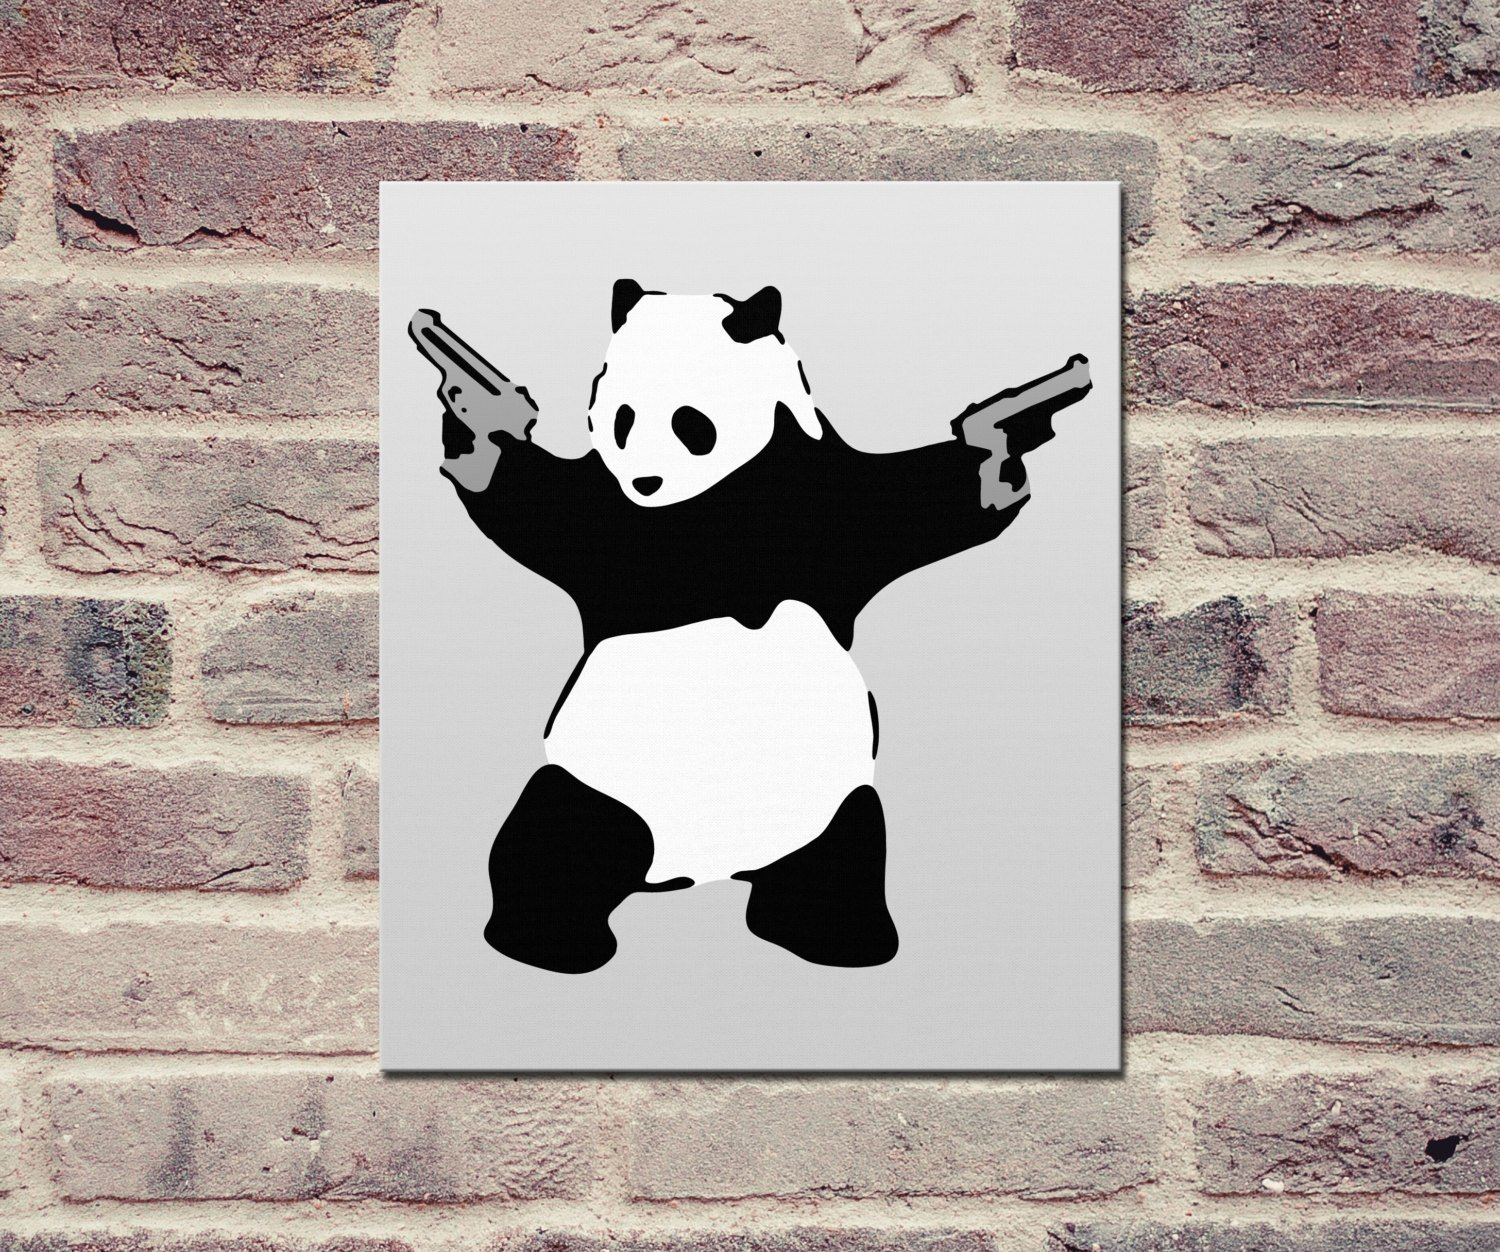 "Banksy, Panda with Guns (11"" x 14"") - Canvas Wrap Print"